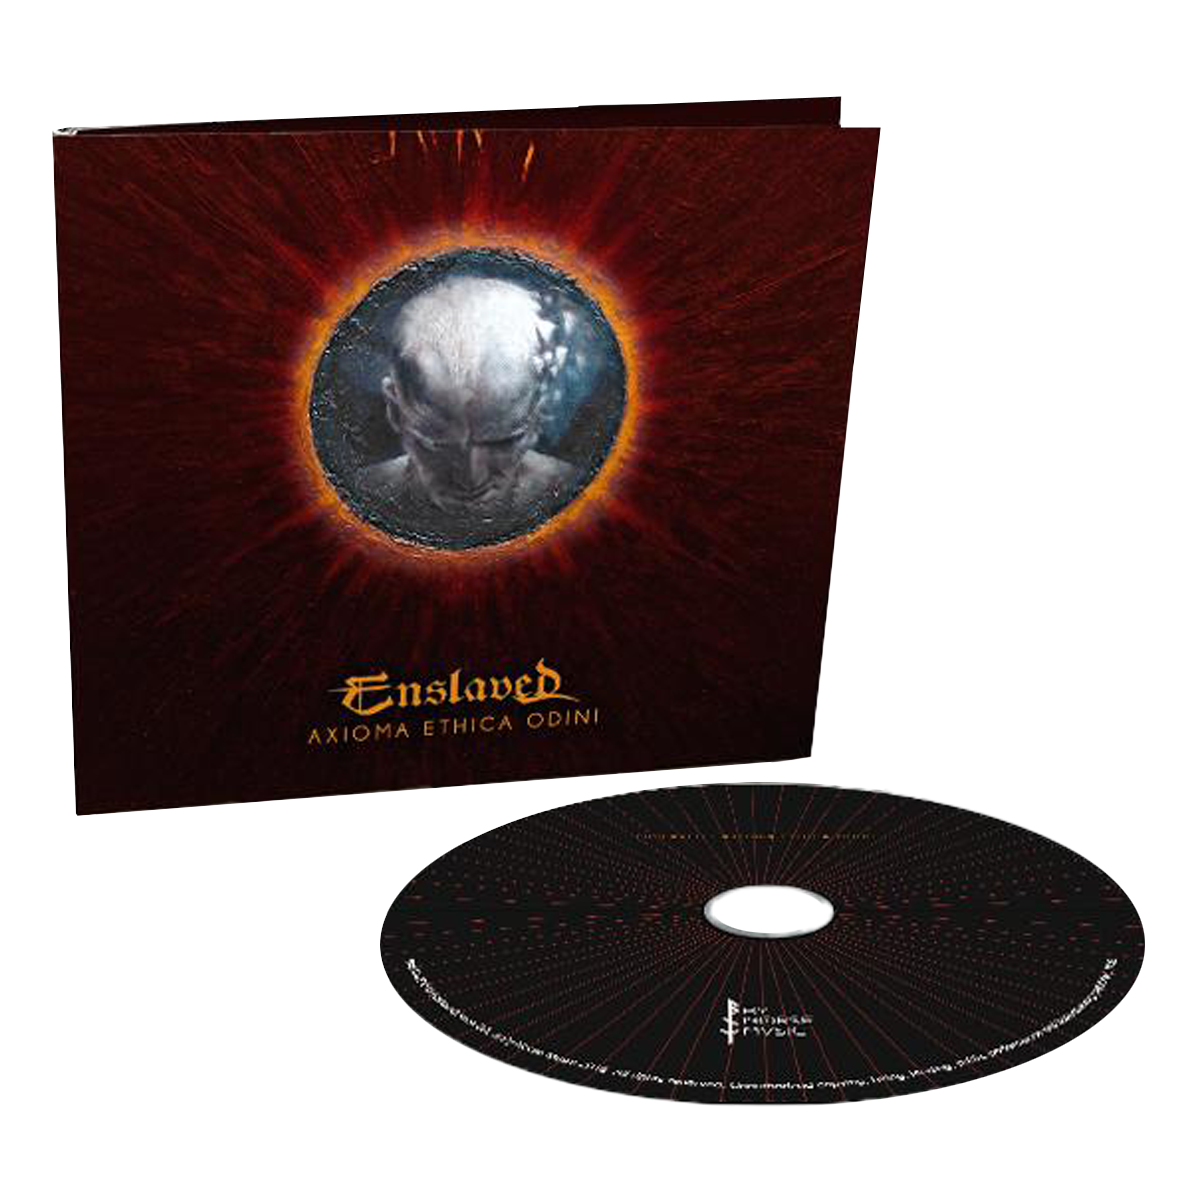 Enslaved - Axioma Ethica Odini (Re-Issue) CD Digipak